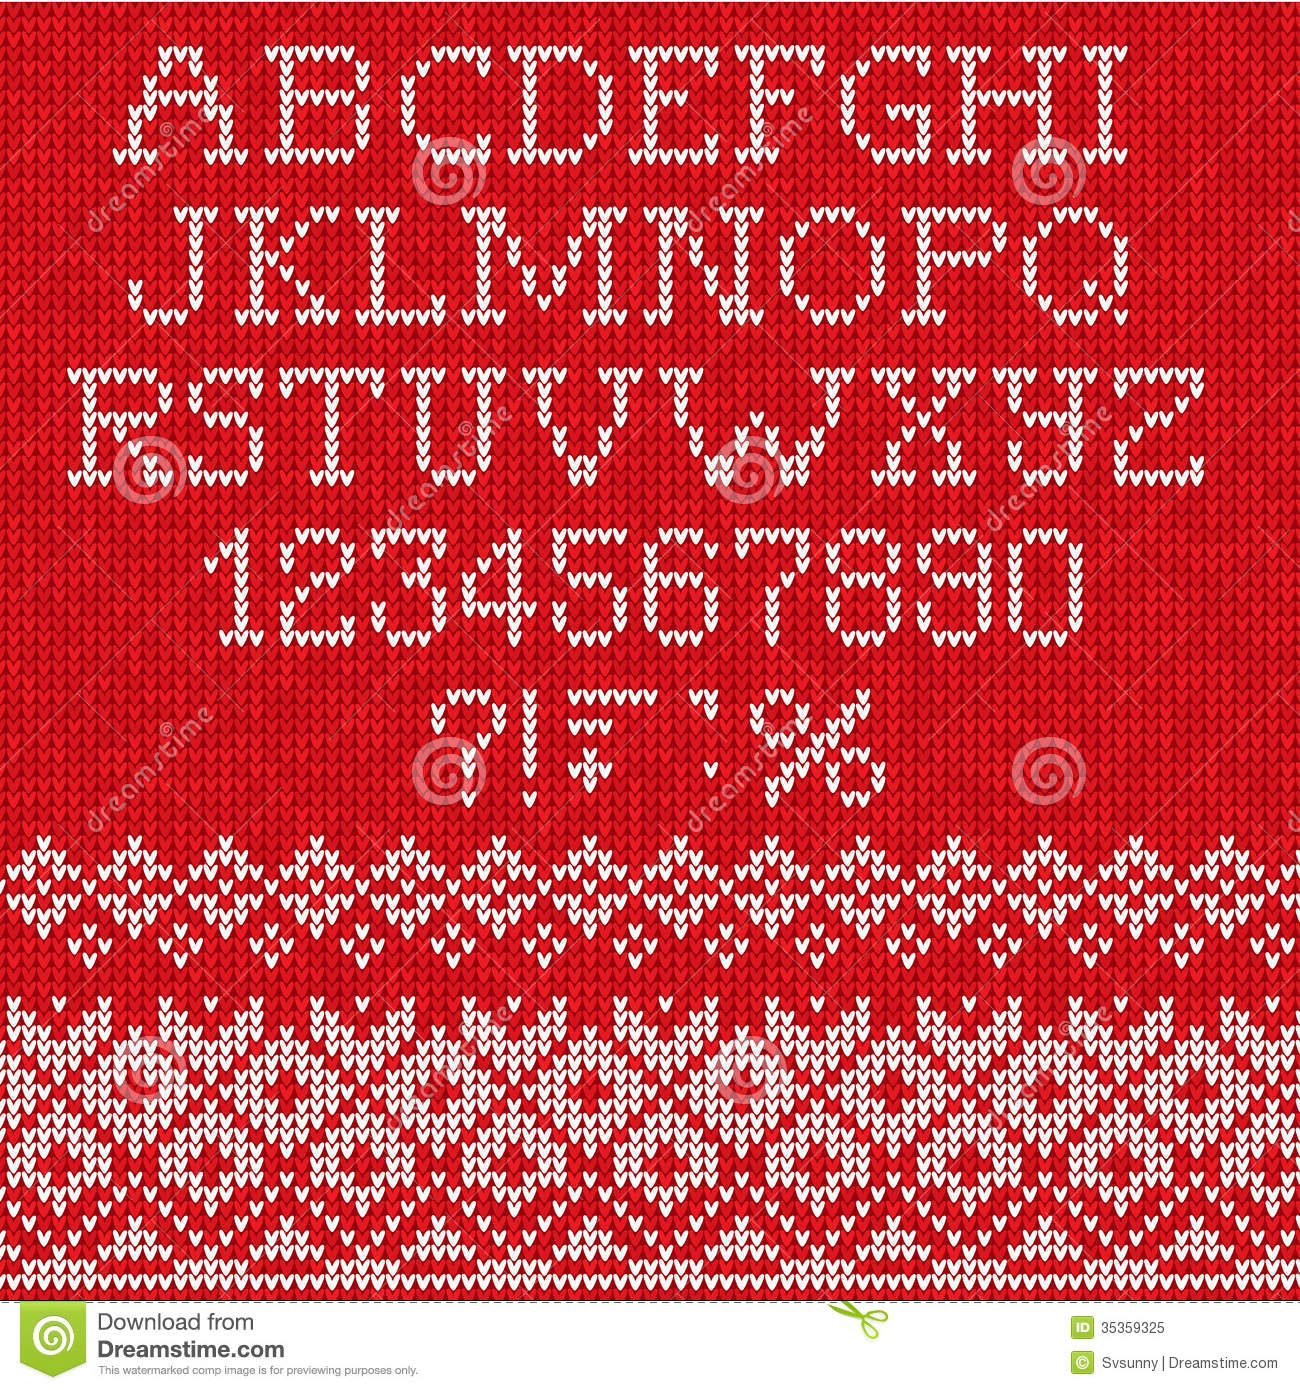 Knitting Font Free Download : Christmas font scandinavian style seamless knitted stock